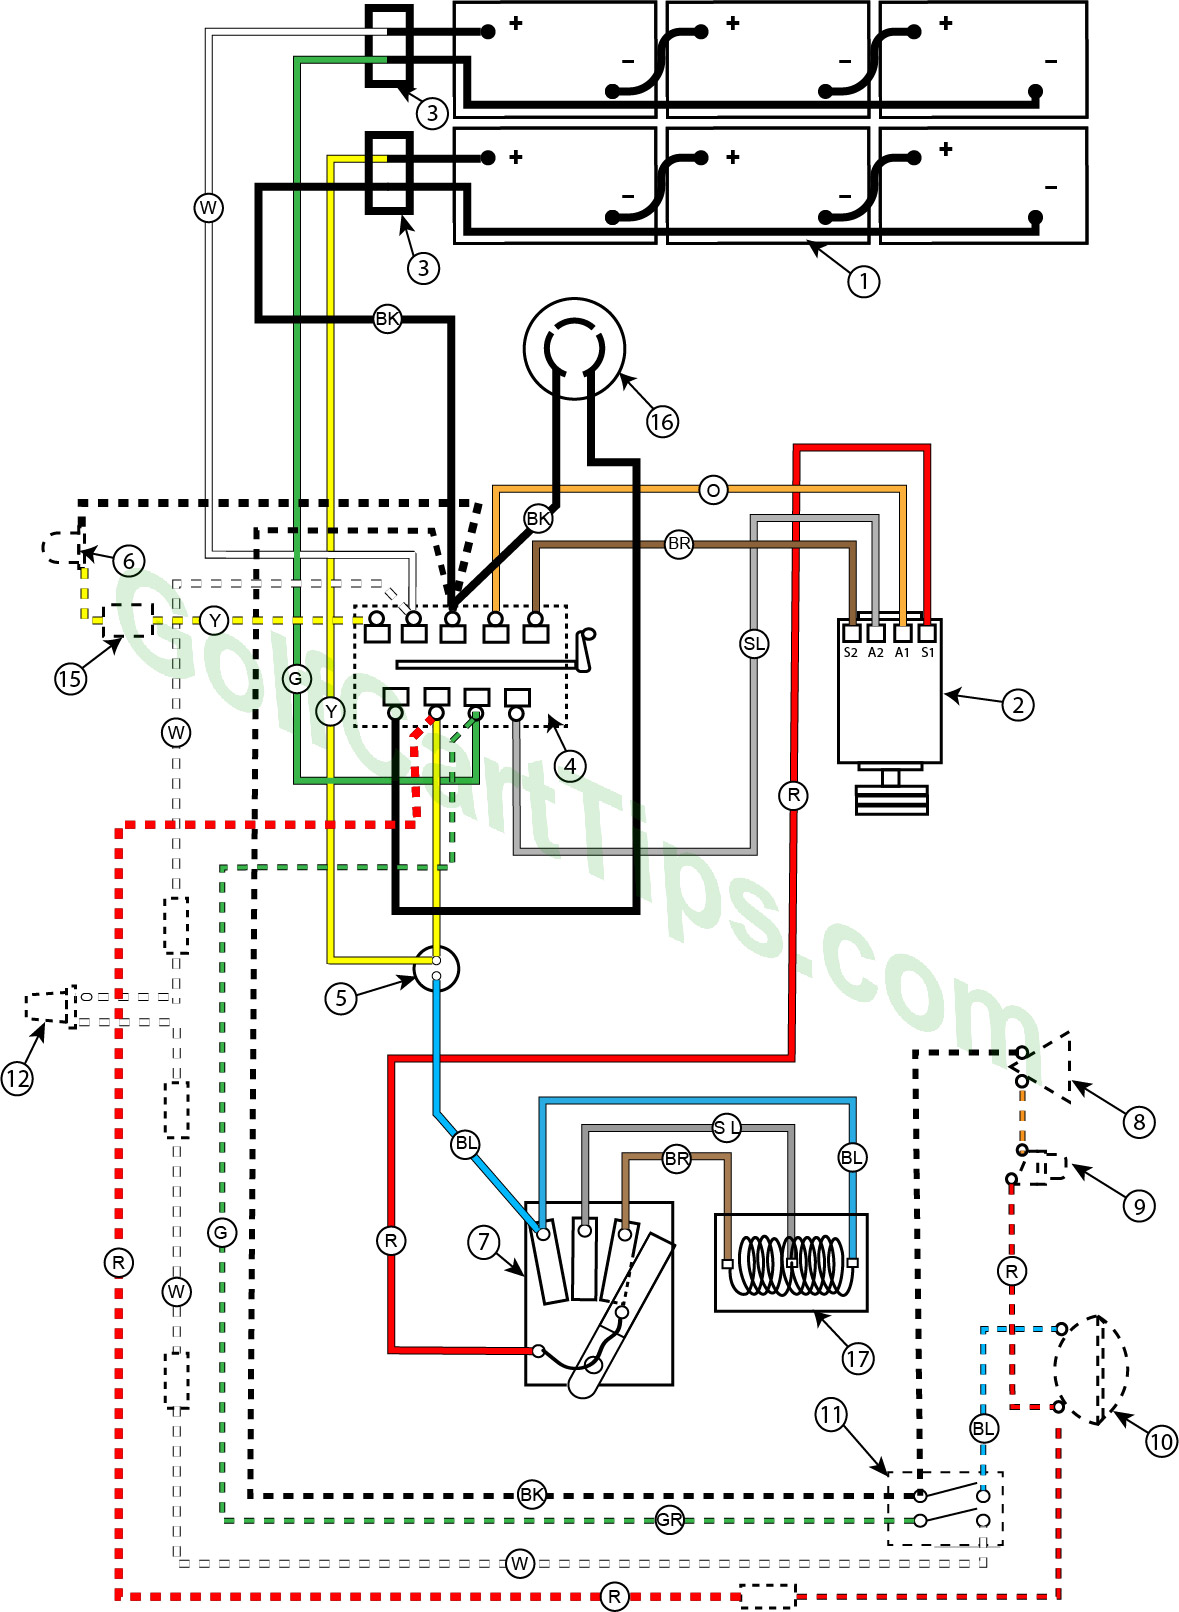 hight resolution of troubleshooting cushman golfsters 1954 58 wiring diagrams cushman 36 volt golf cart wiring diagram cushman 36 volt golf cart wiring diagram